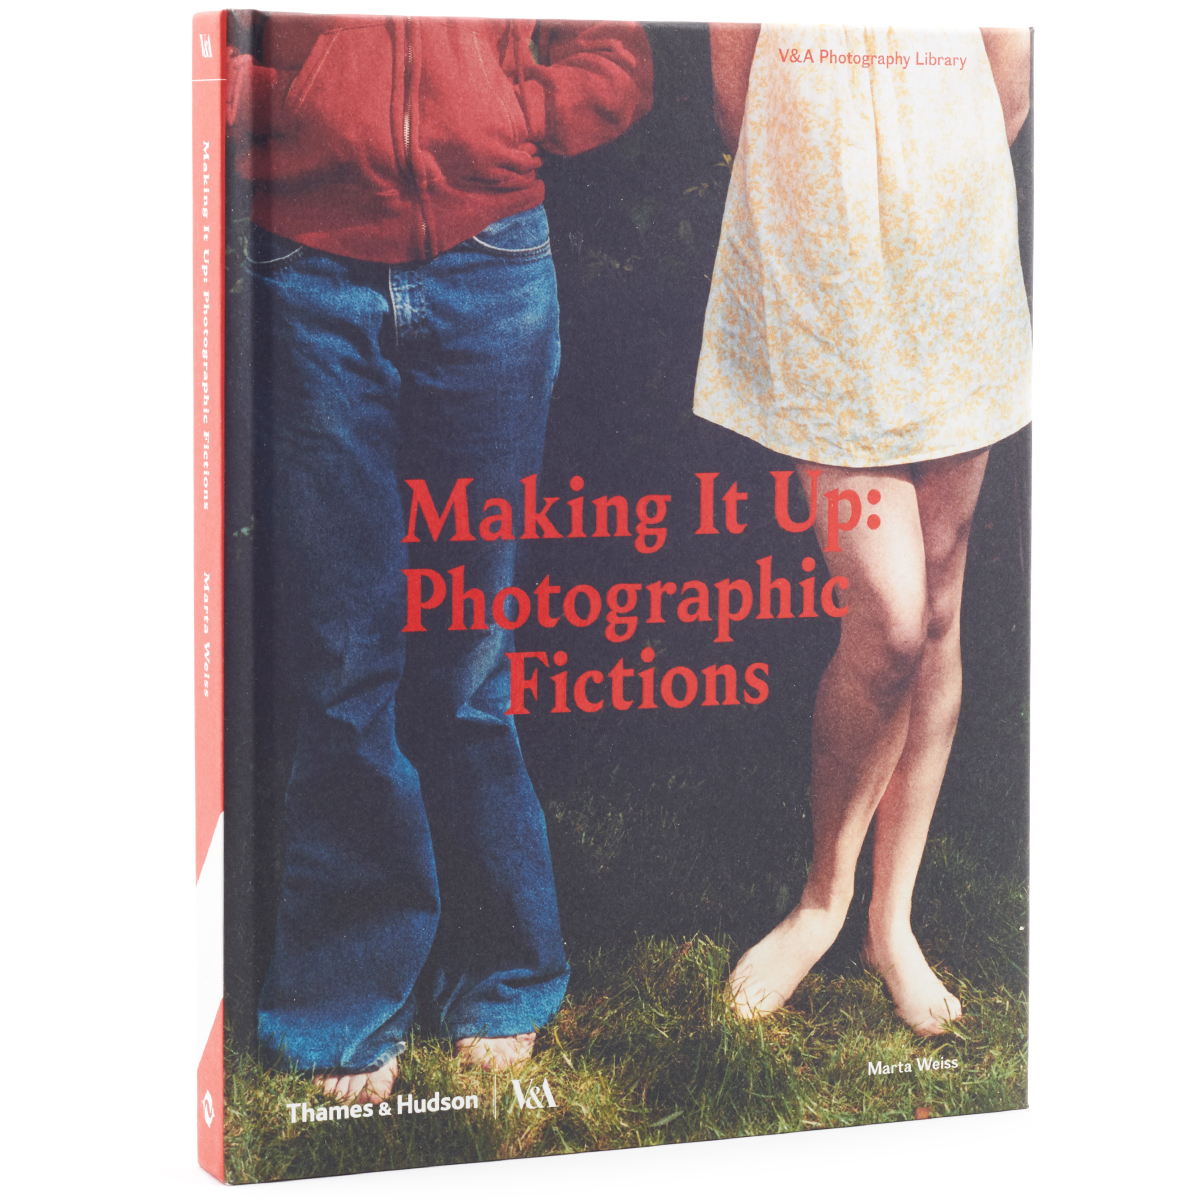 Making It Up: Photographic Fictions